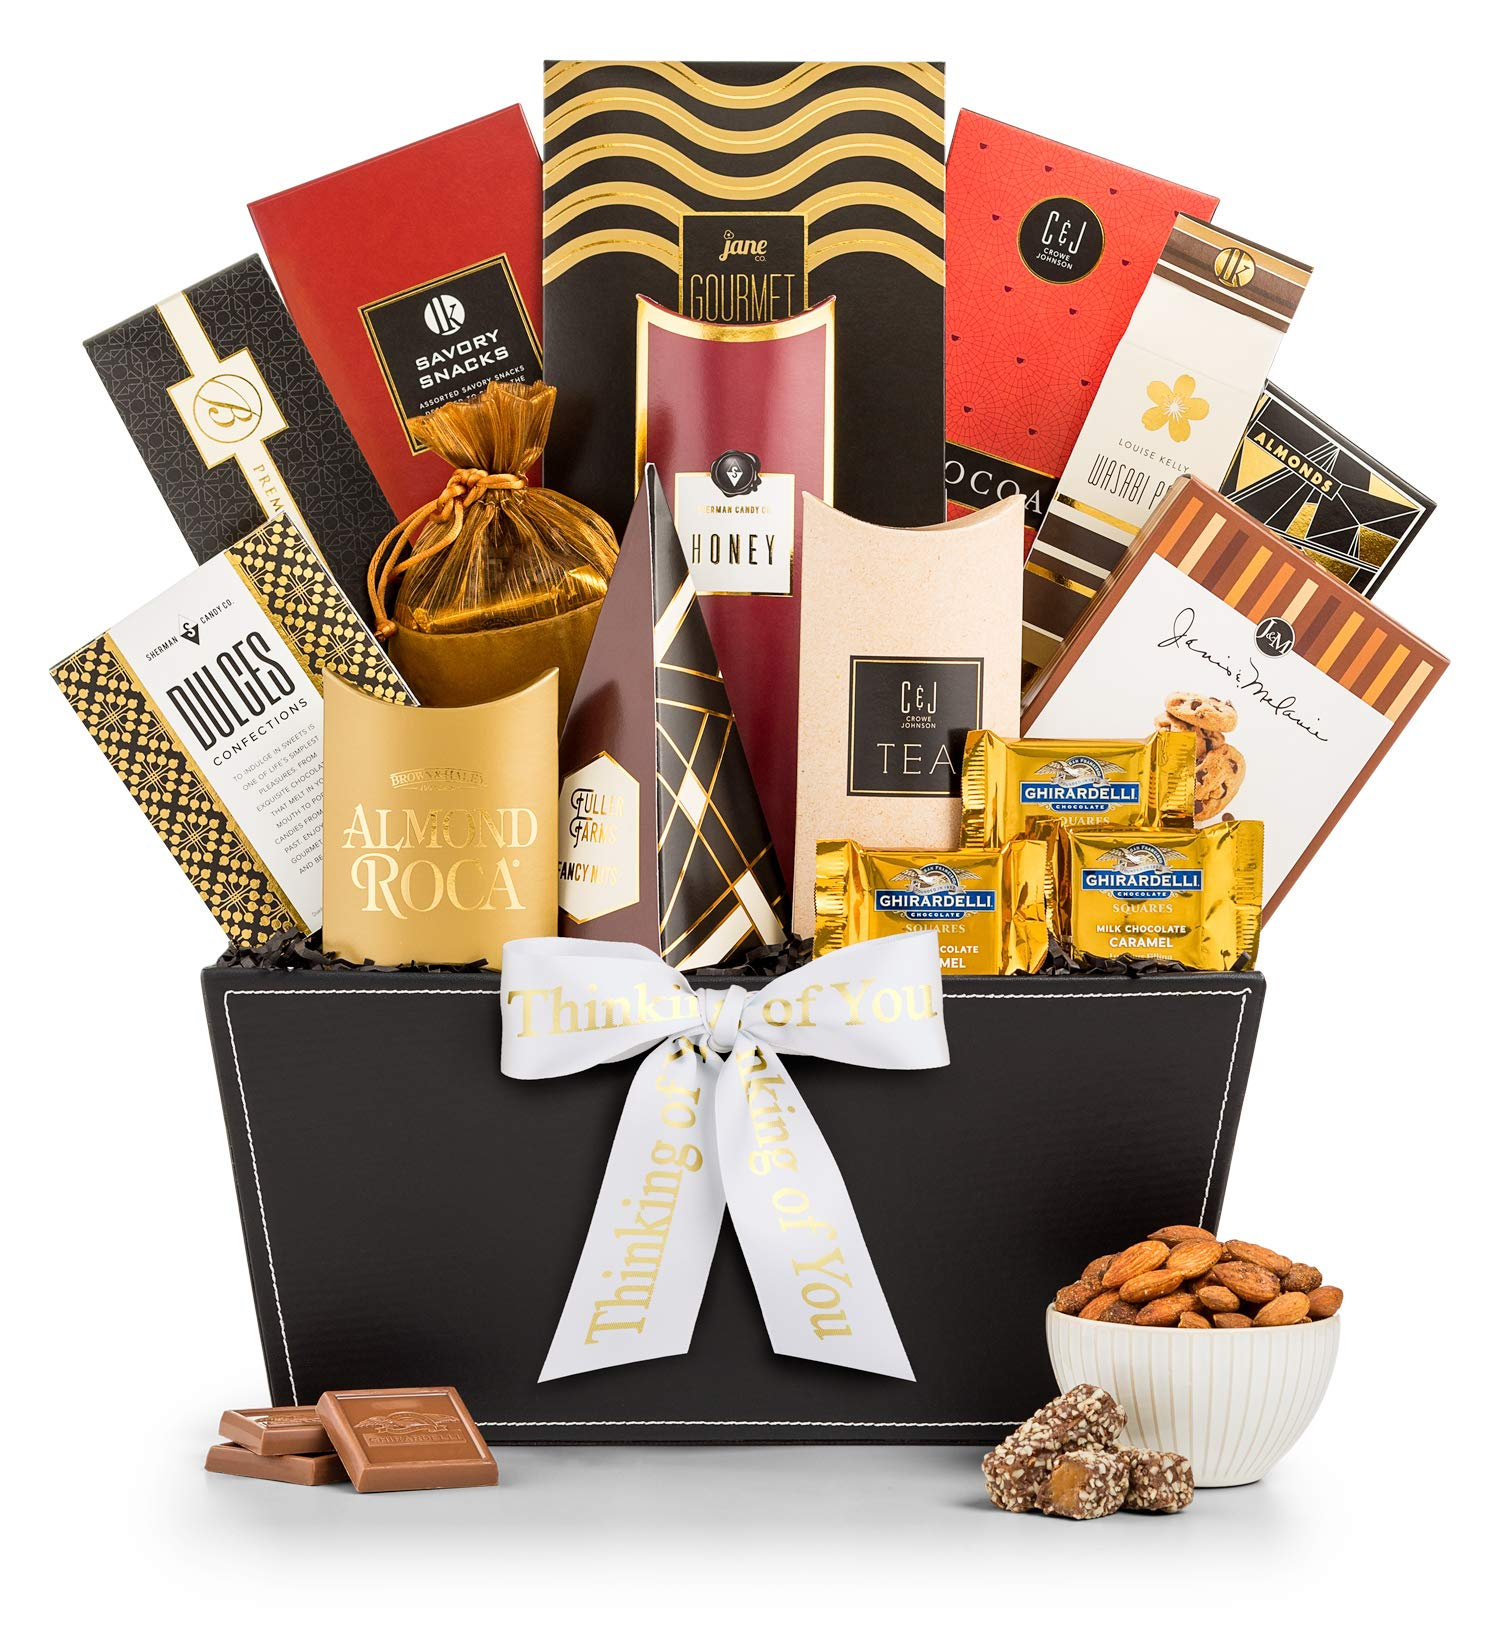 CDM product GiftTree Broadway Gourmet Thinking of You Gift Basket | Premium Chocolate, Gourmet Cookies, Mixed Nuts & More | Show Them They're On Your Mind big image